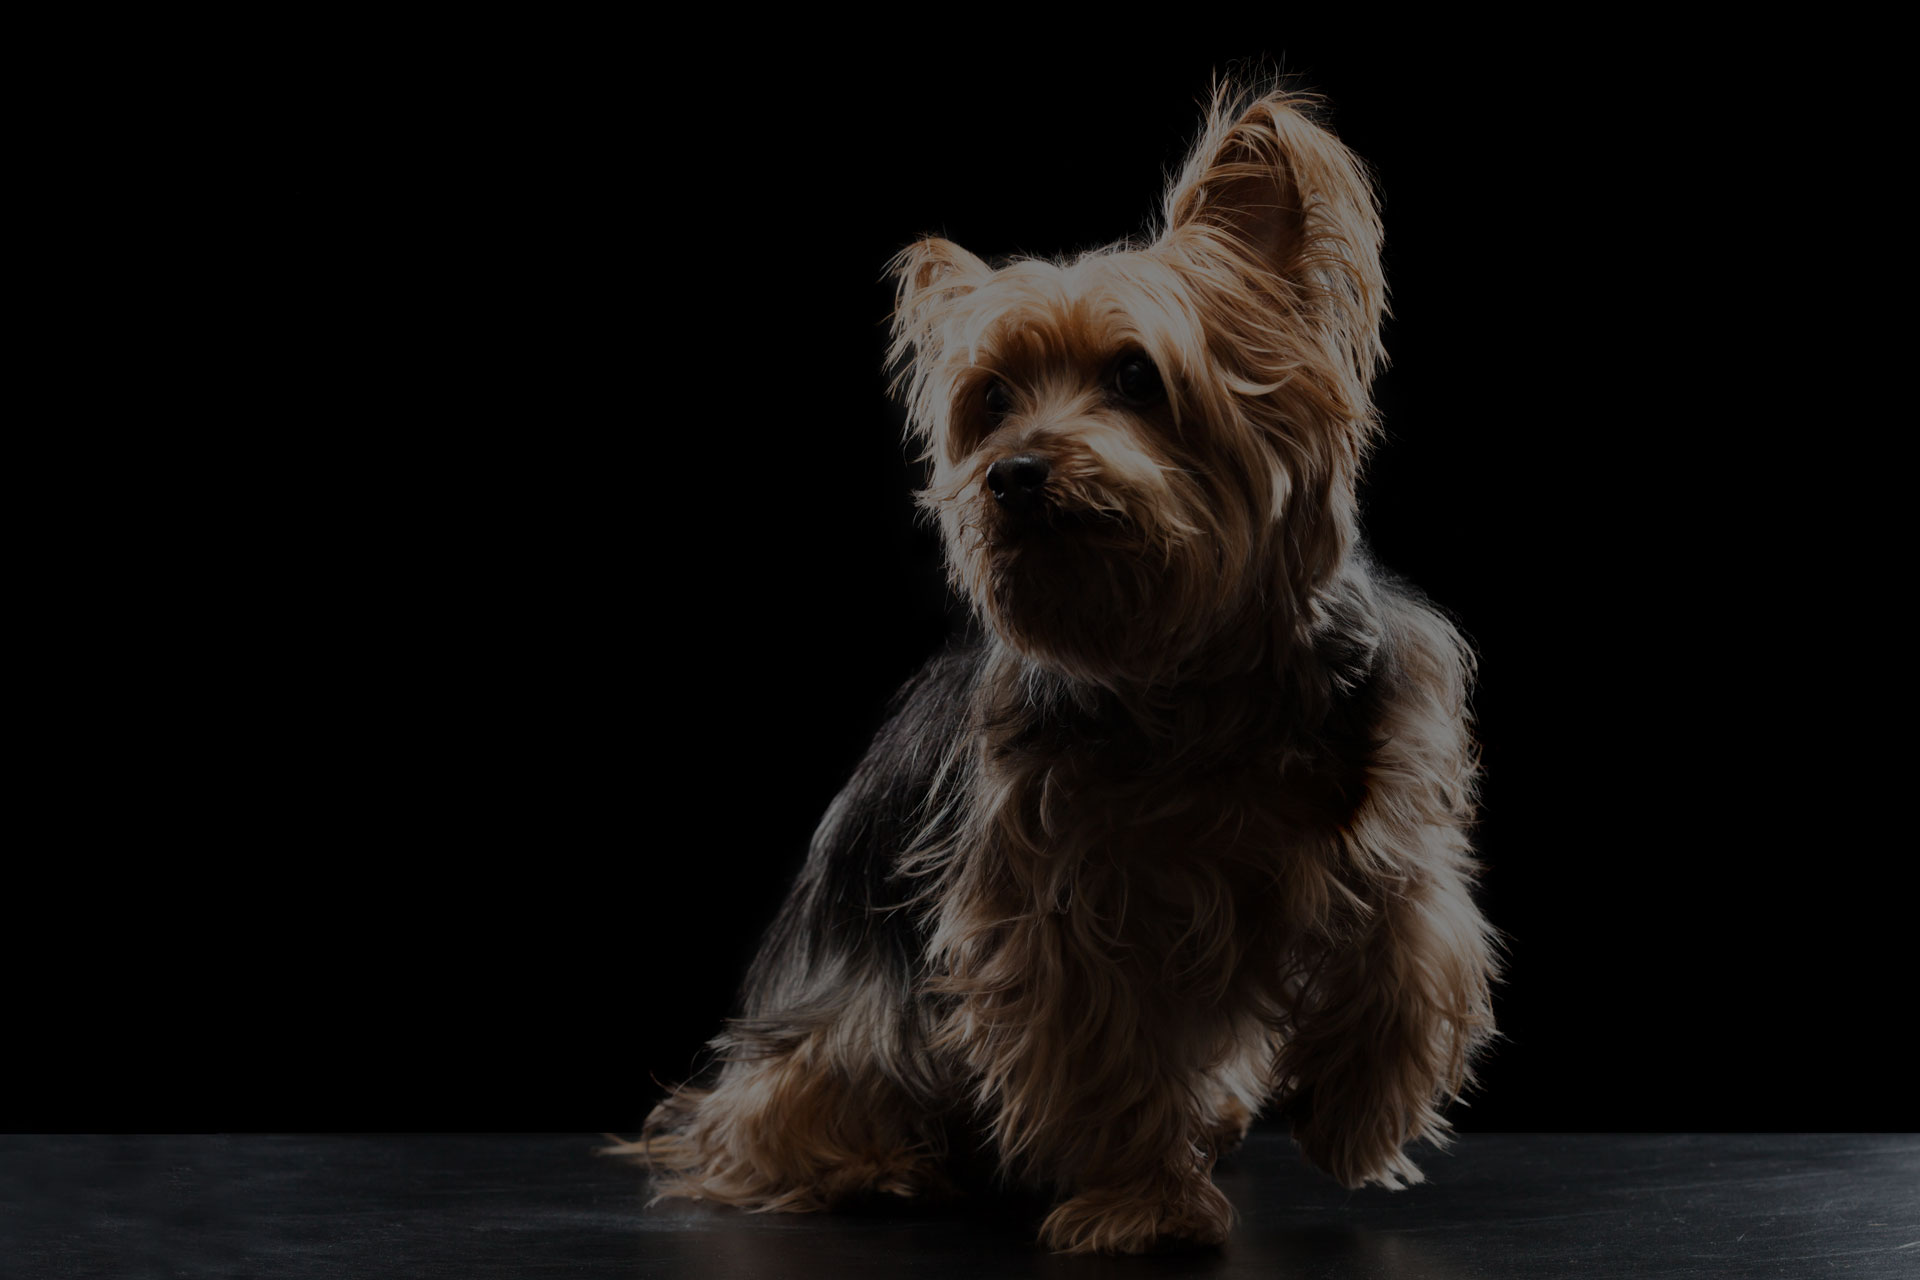 Cute Brown Yorkie Silky Mutt Playing - Image